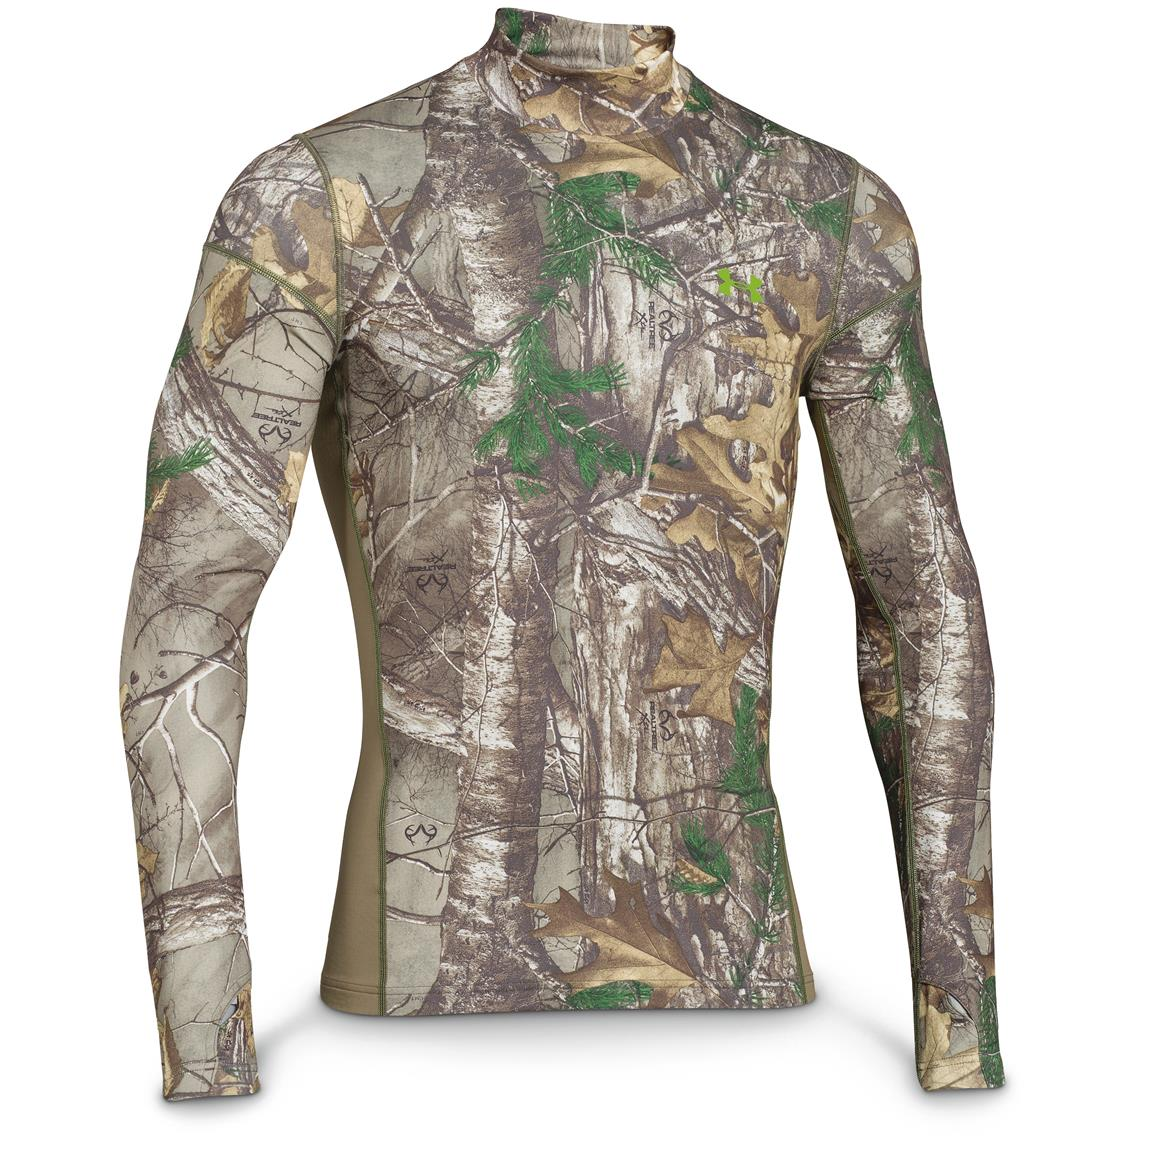 Under Armour ColdGear Infrared Scent Control Tevo Mock Long-Sleeve Shirt, Realtree Xtra